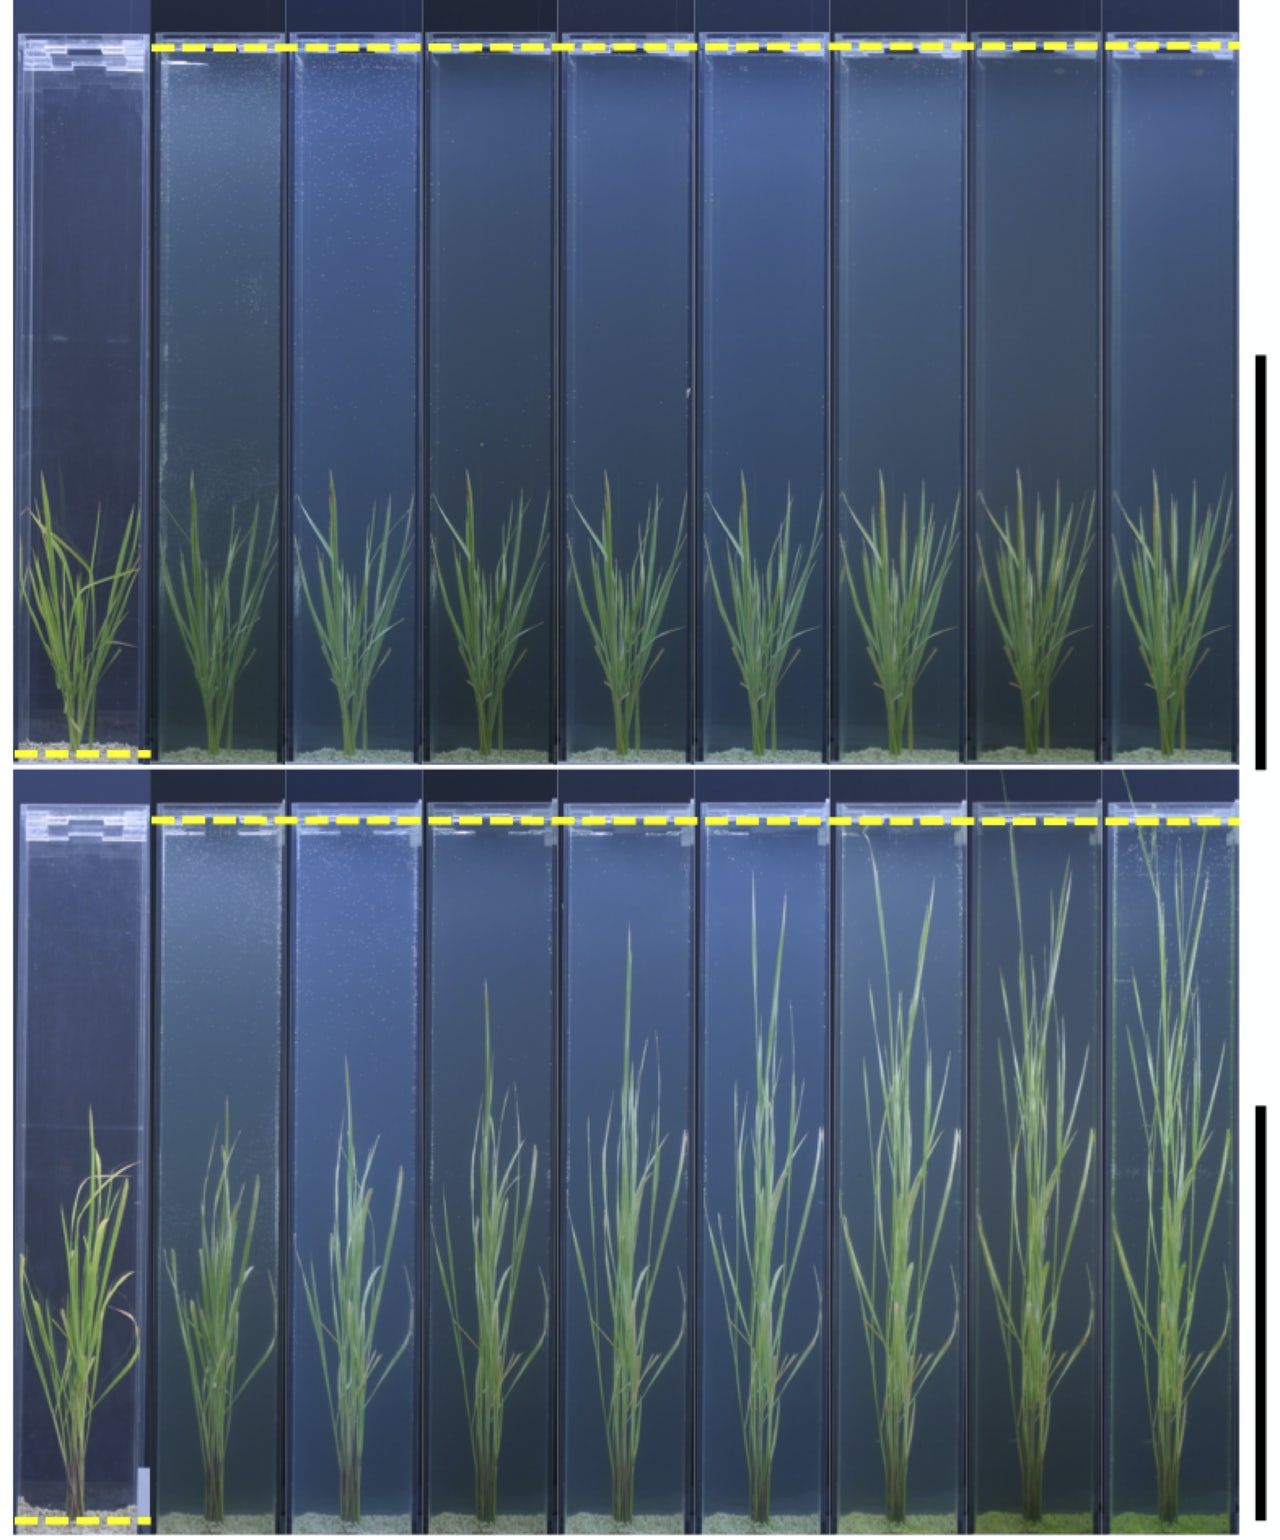 Compared to the control on the top row (non-deepwater) rice, stem elongation in deepwater rice is much more rapid and significant.